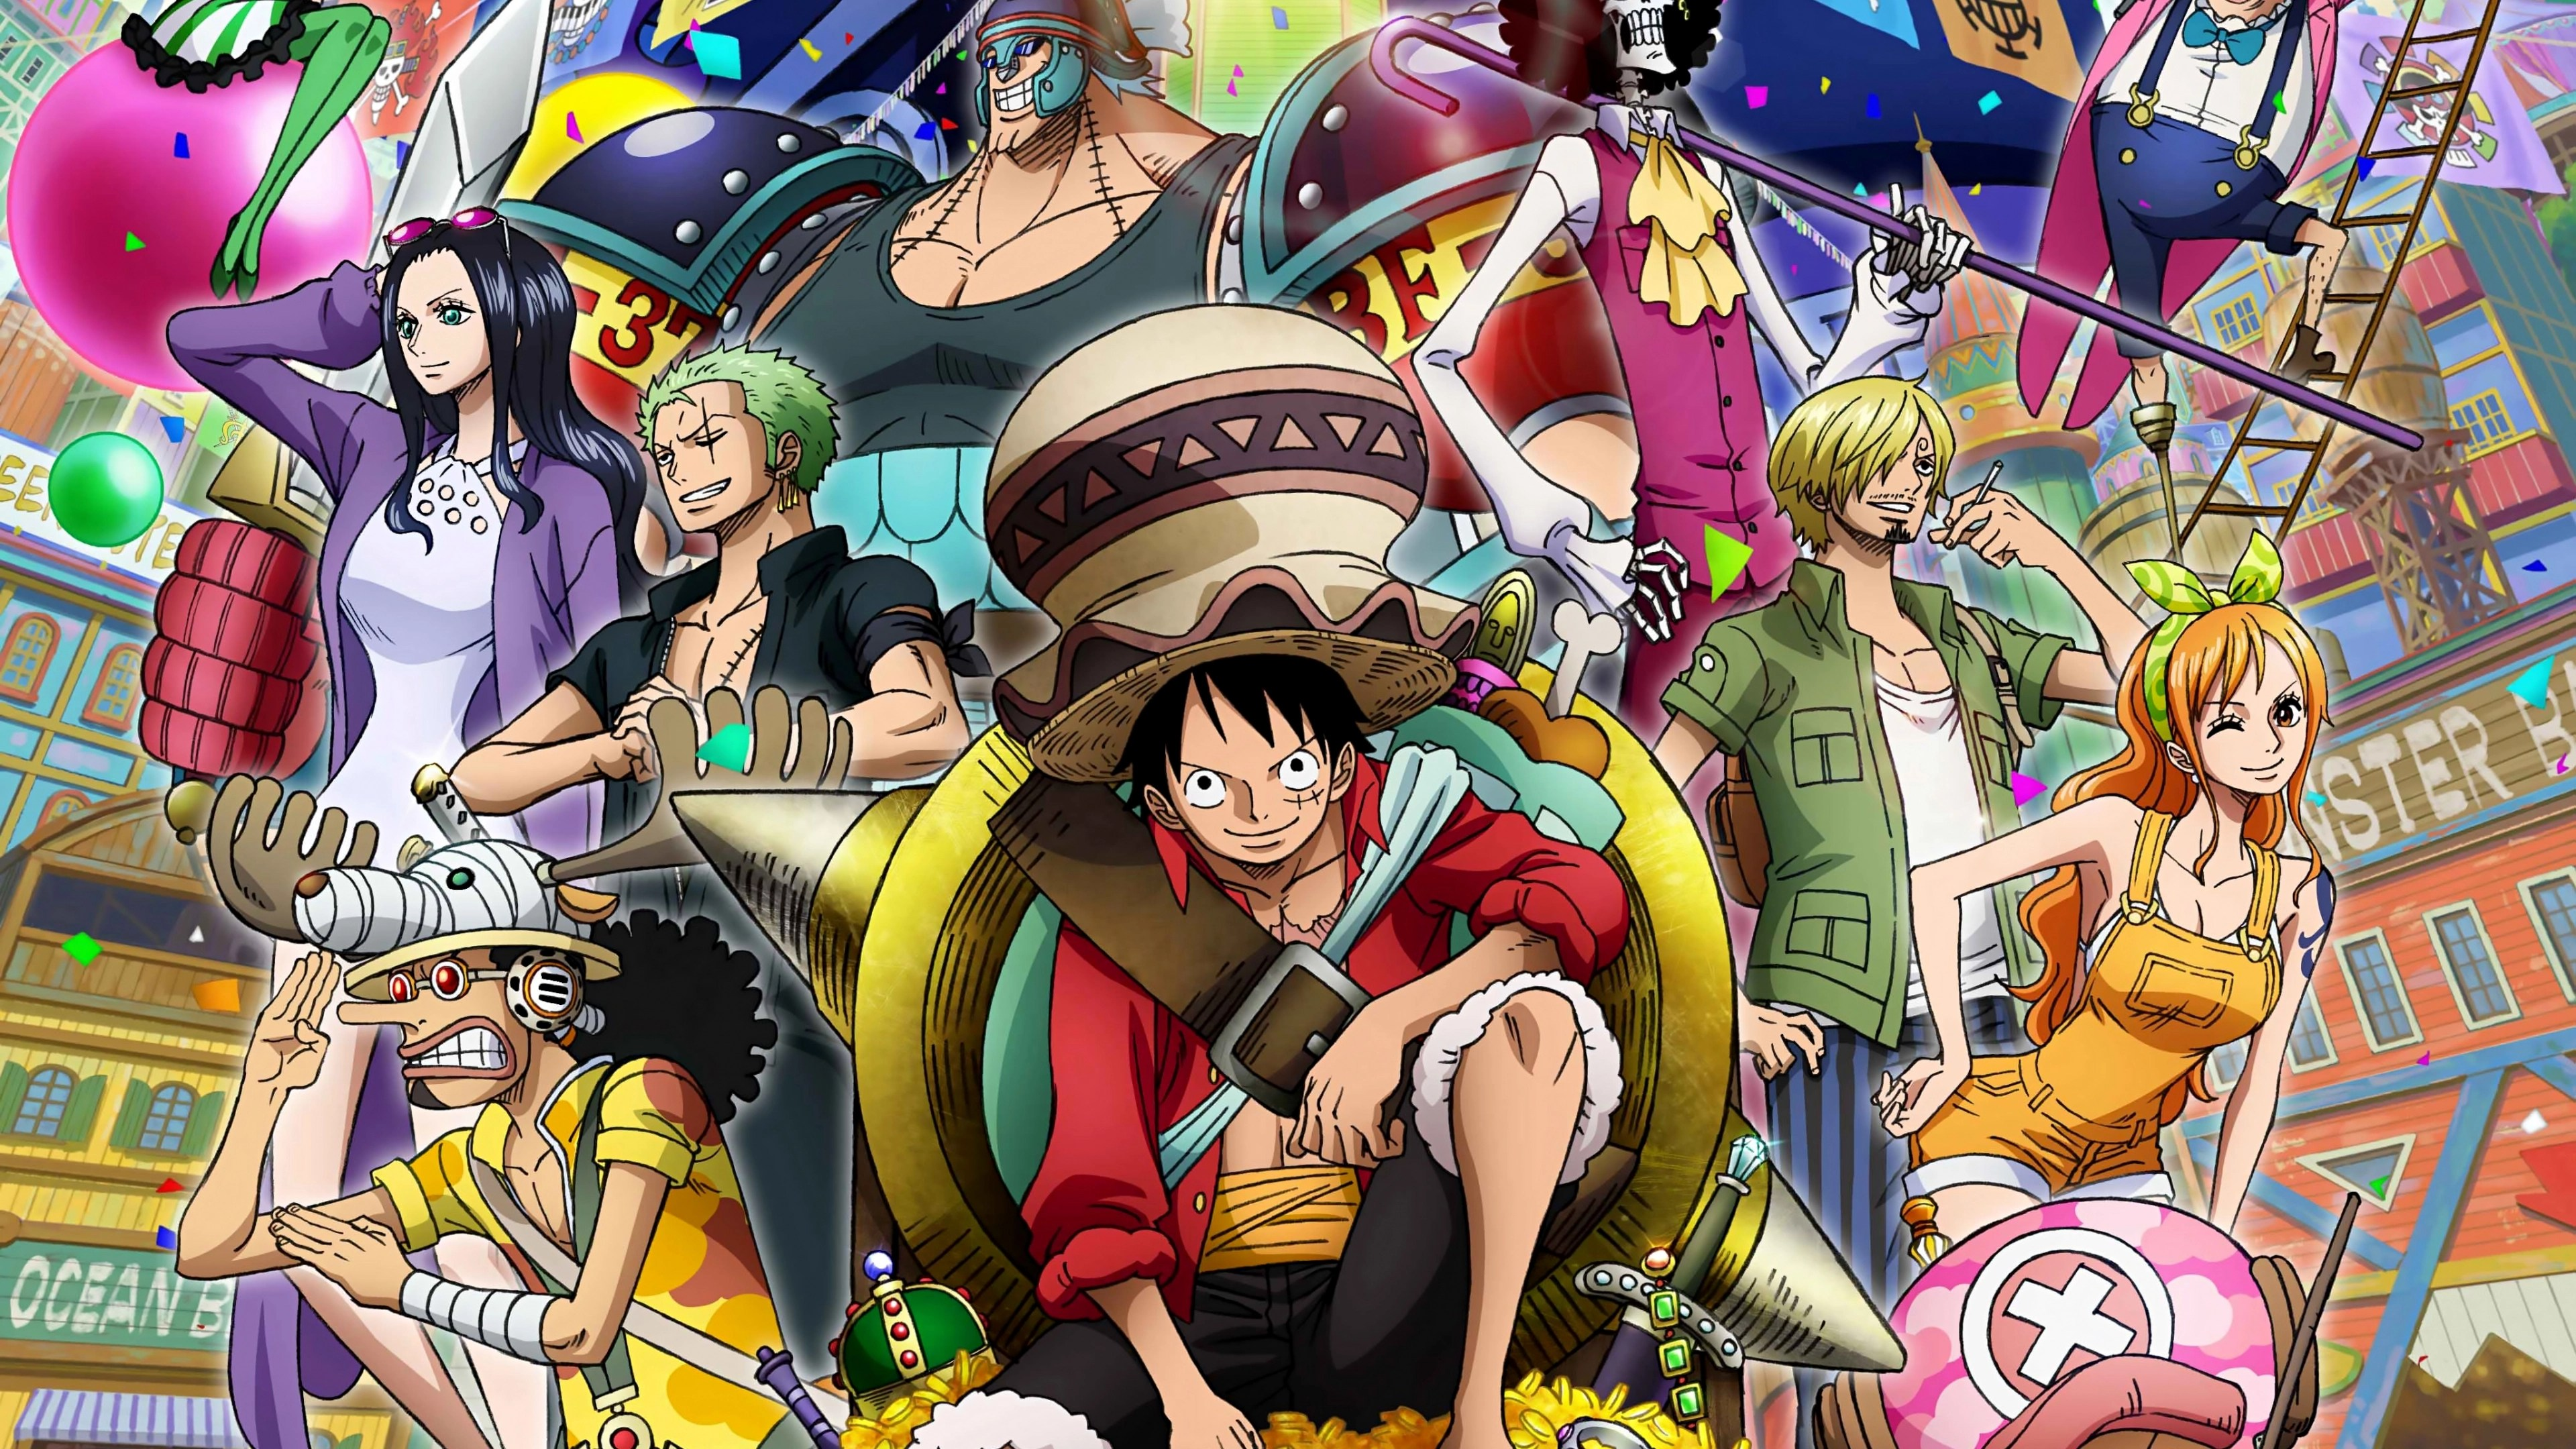 The best quality and size only with us! One Piece Wallpaper 4k Pc - Kumpulan Wallpaper Baru